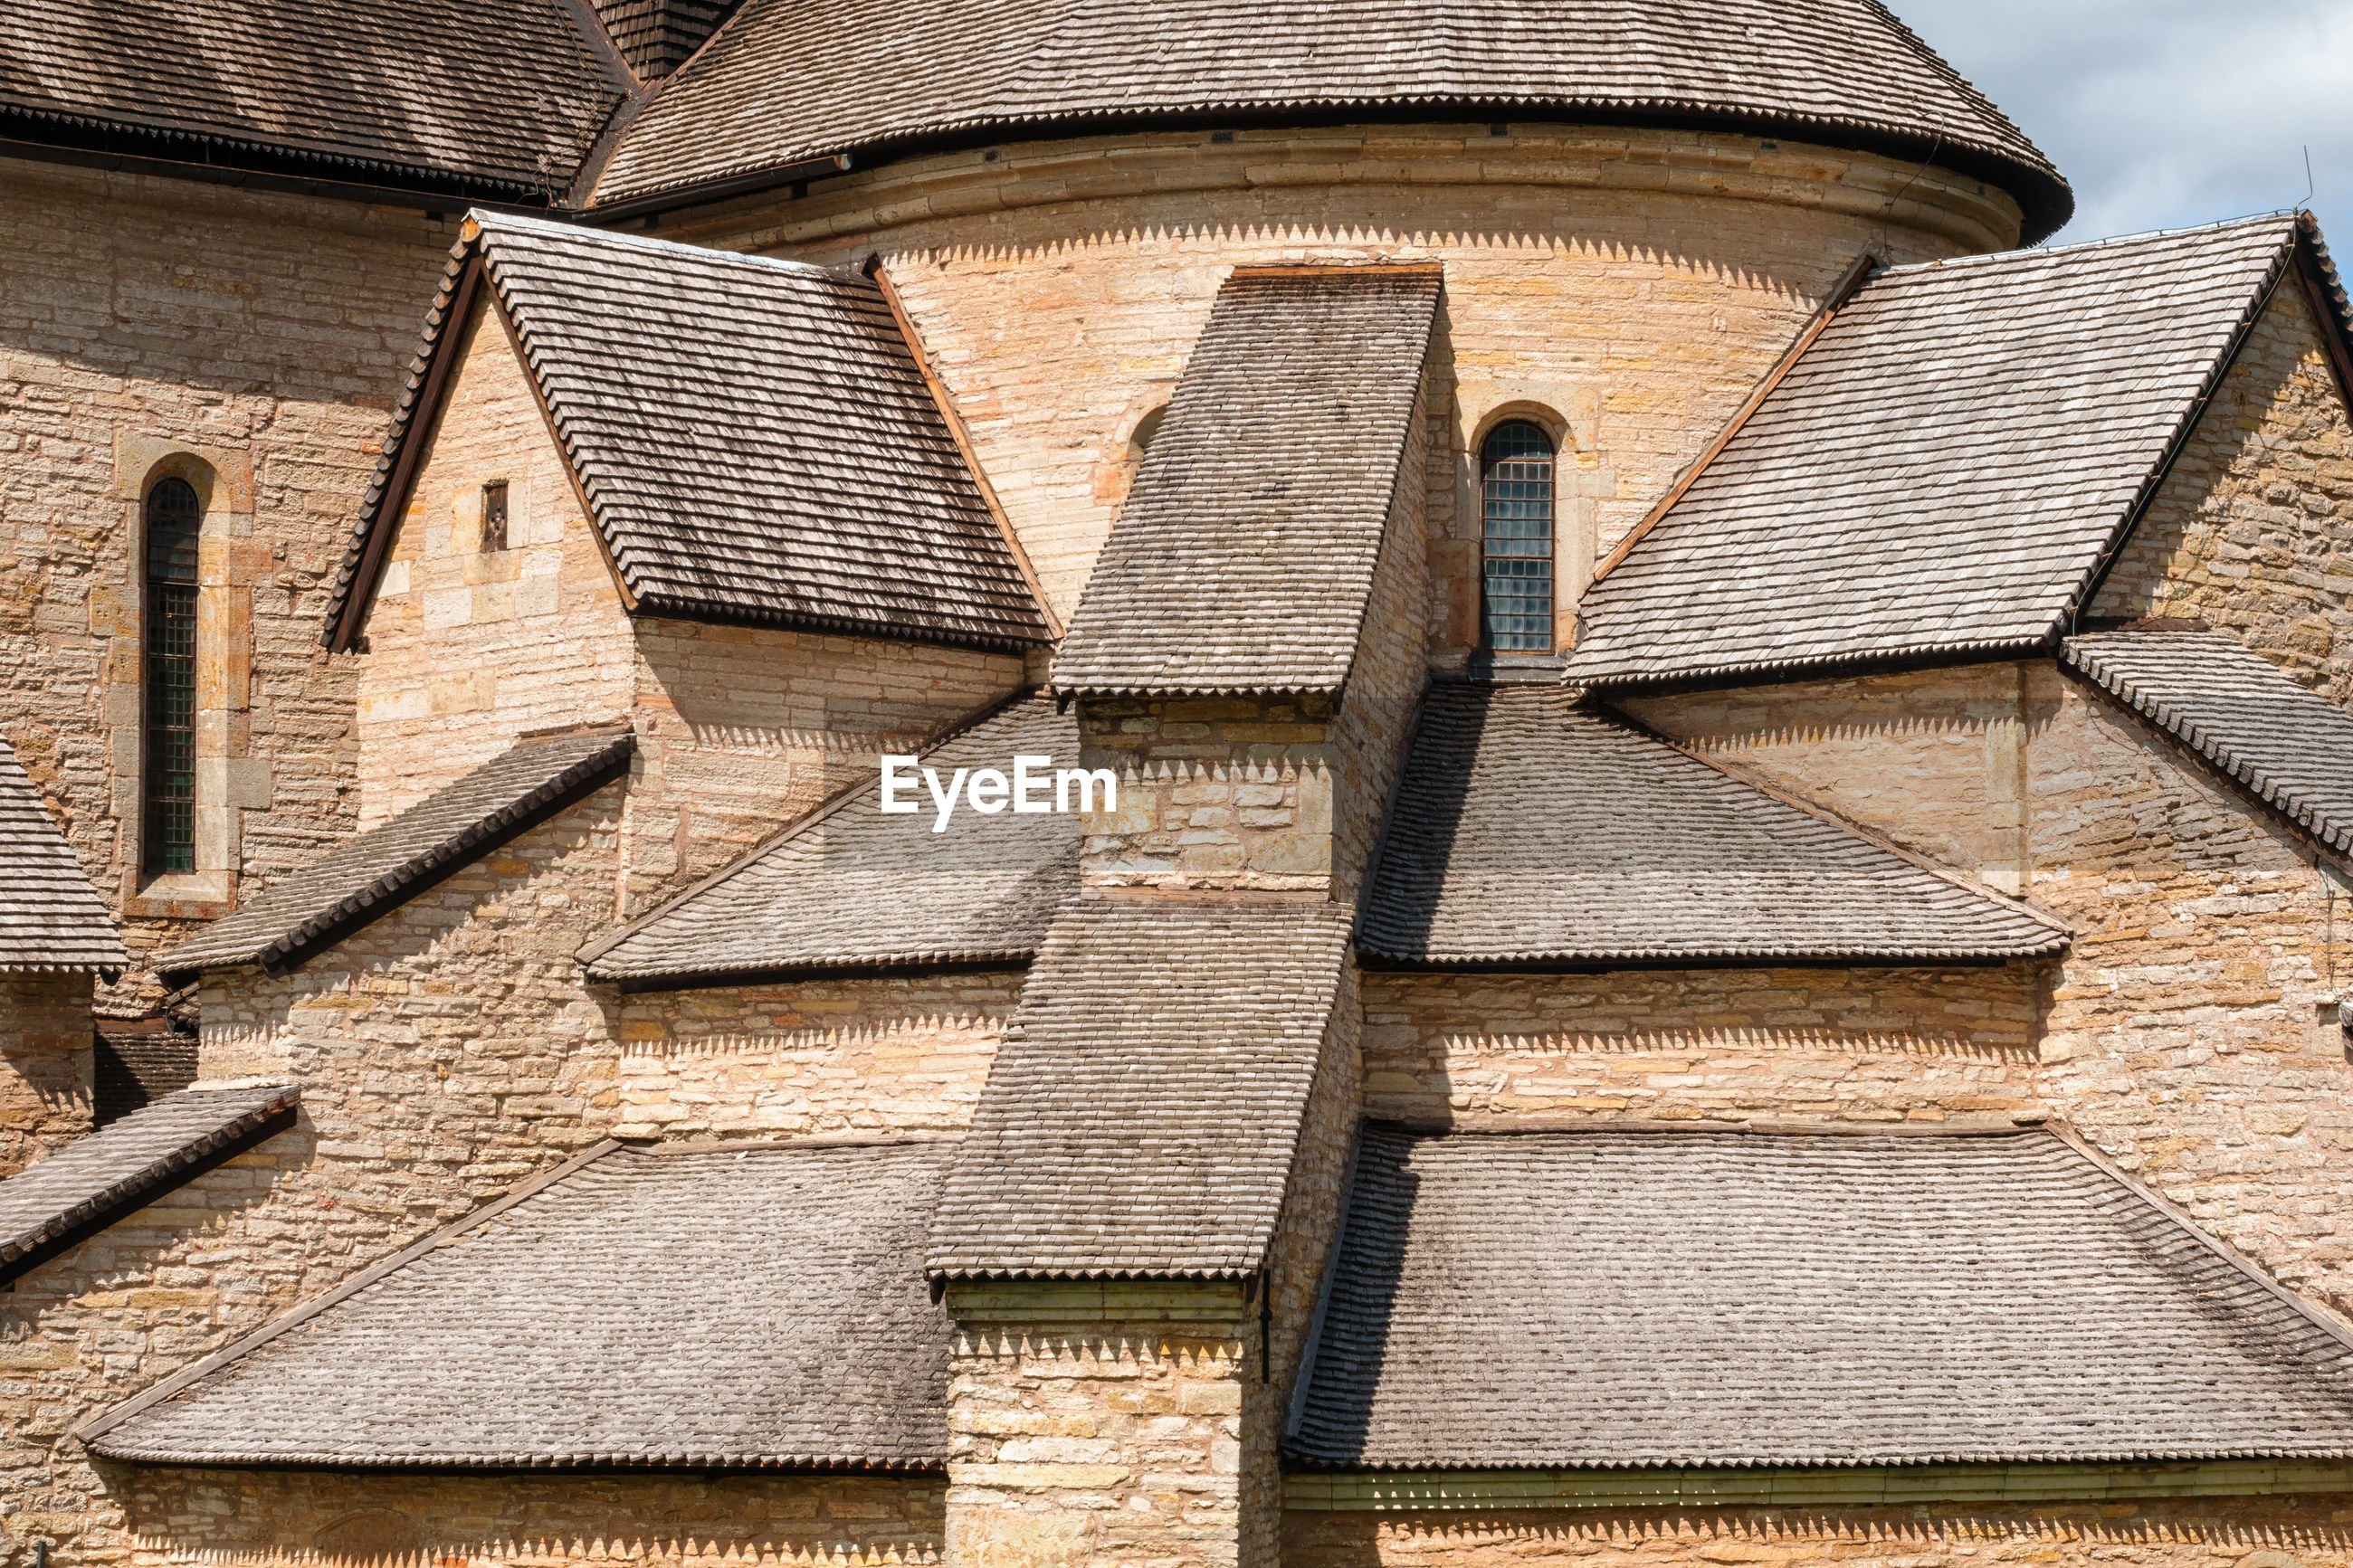 LOW ANGLE VIEW OF ROOF TILES ON BUILDING